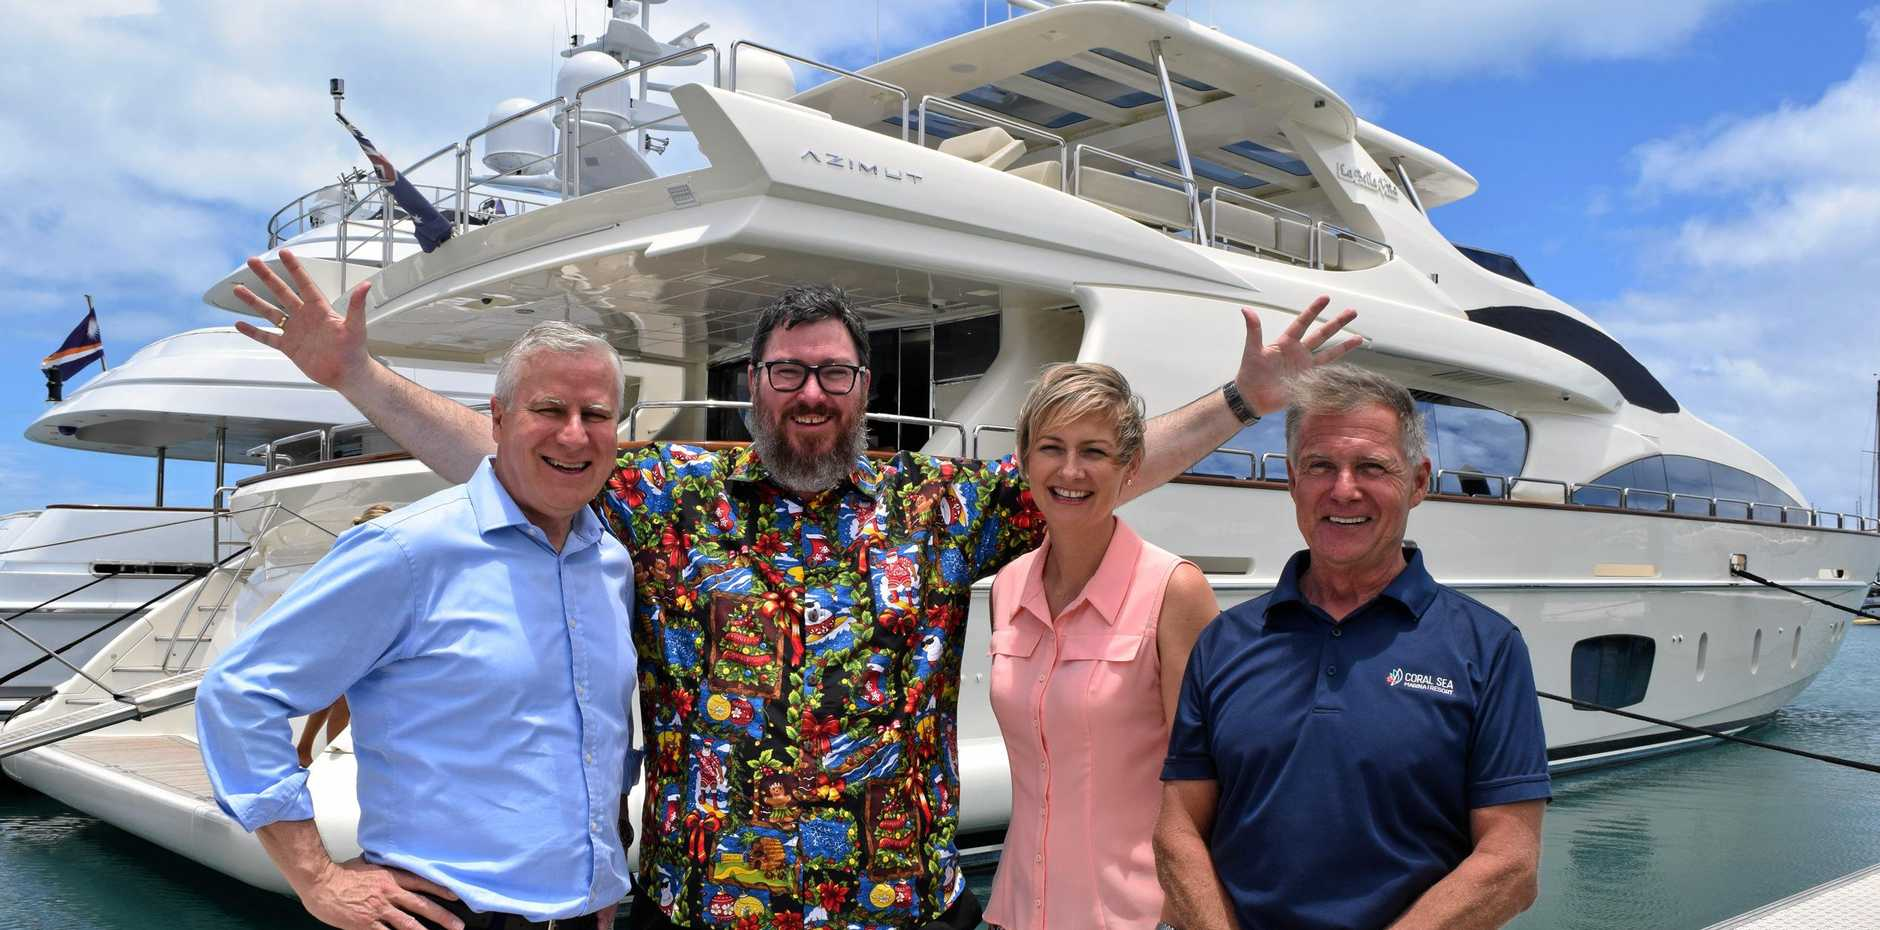 Deputy Prime Minister Michael McCormack, Federal Member for Dawson George Christensen, Whitsunday state LNP candidate Amanda Camm and Coral Sea Marina owner Paul Darrouzet at the marina celebrating legislation removing import duties for superyachts.